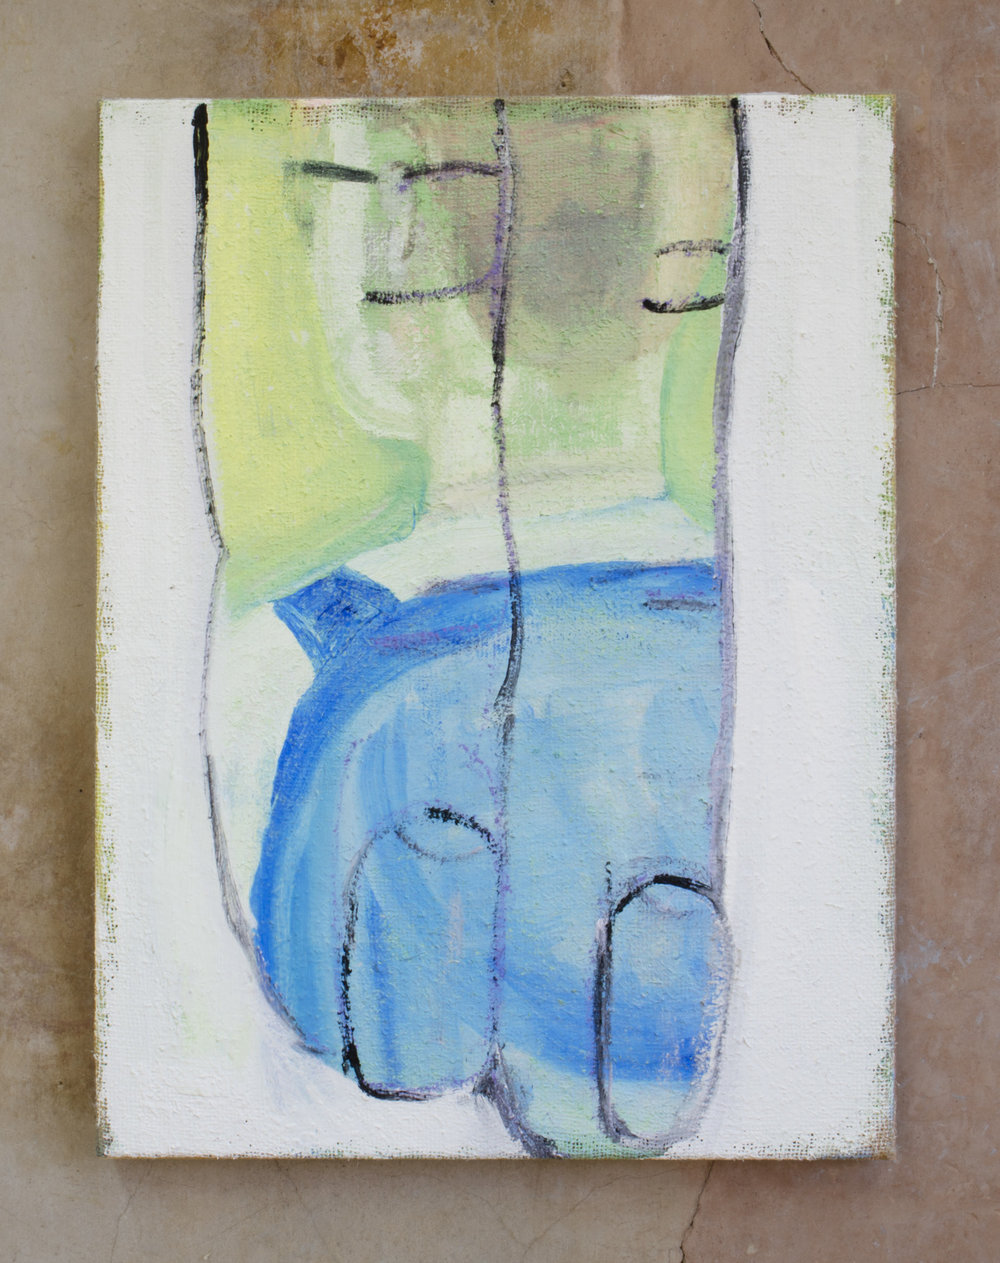 Backpack, 2015, 61 x 46 cm, acrylic, oil, emulsion, plaster and chalk on hessian.